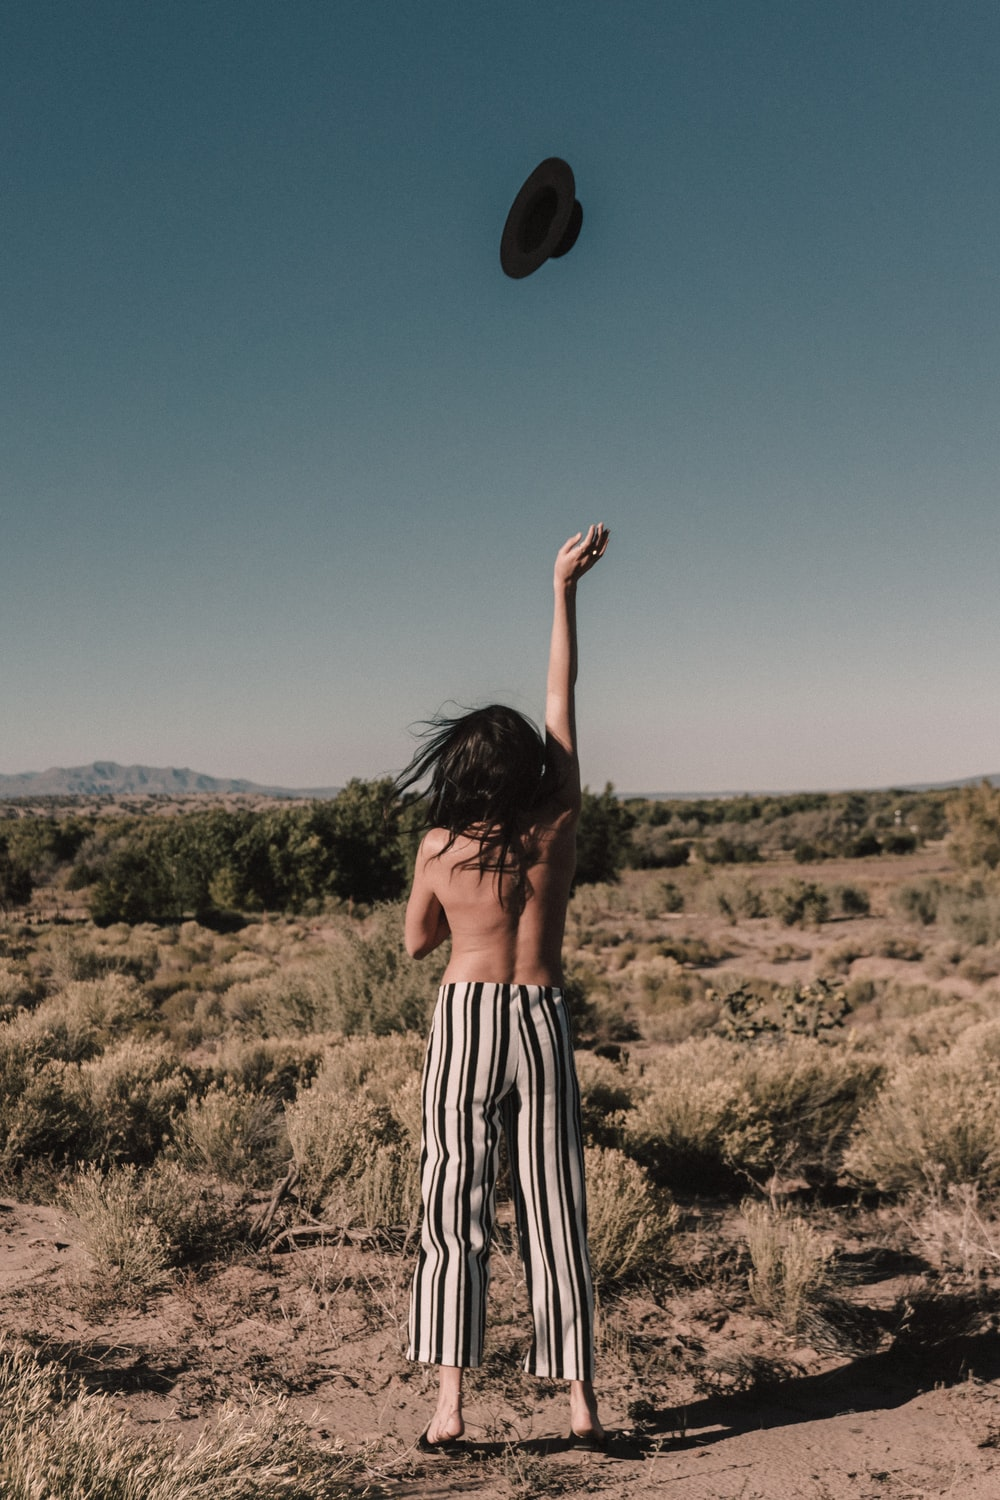 topless person throwing black hat